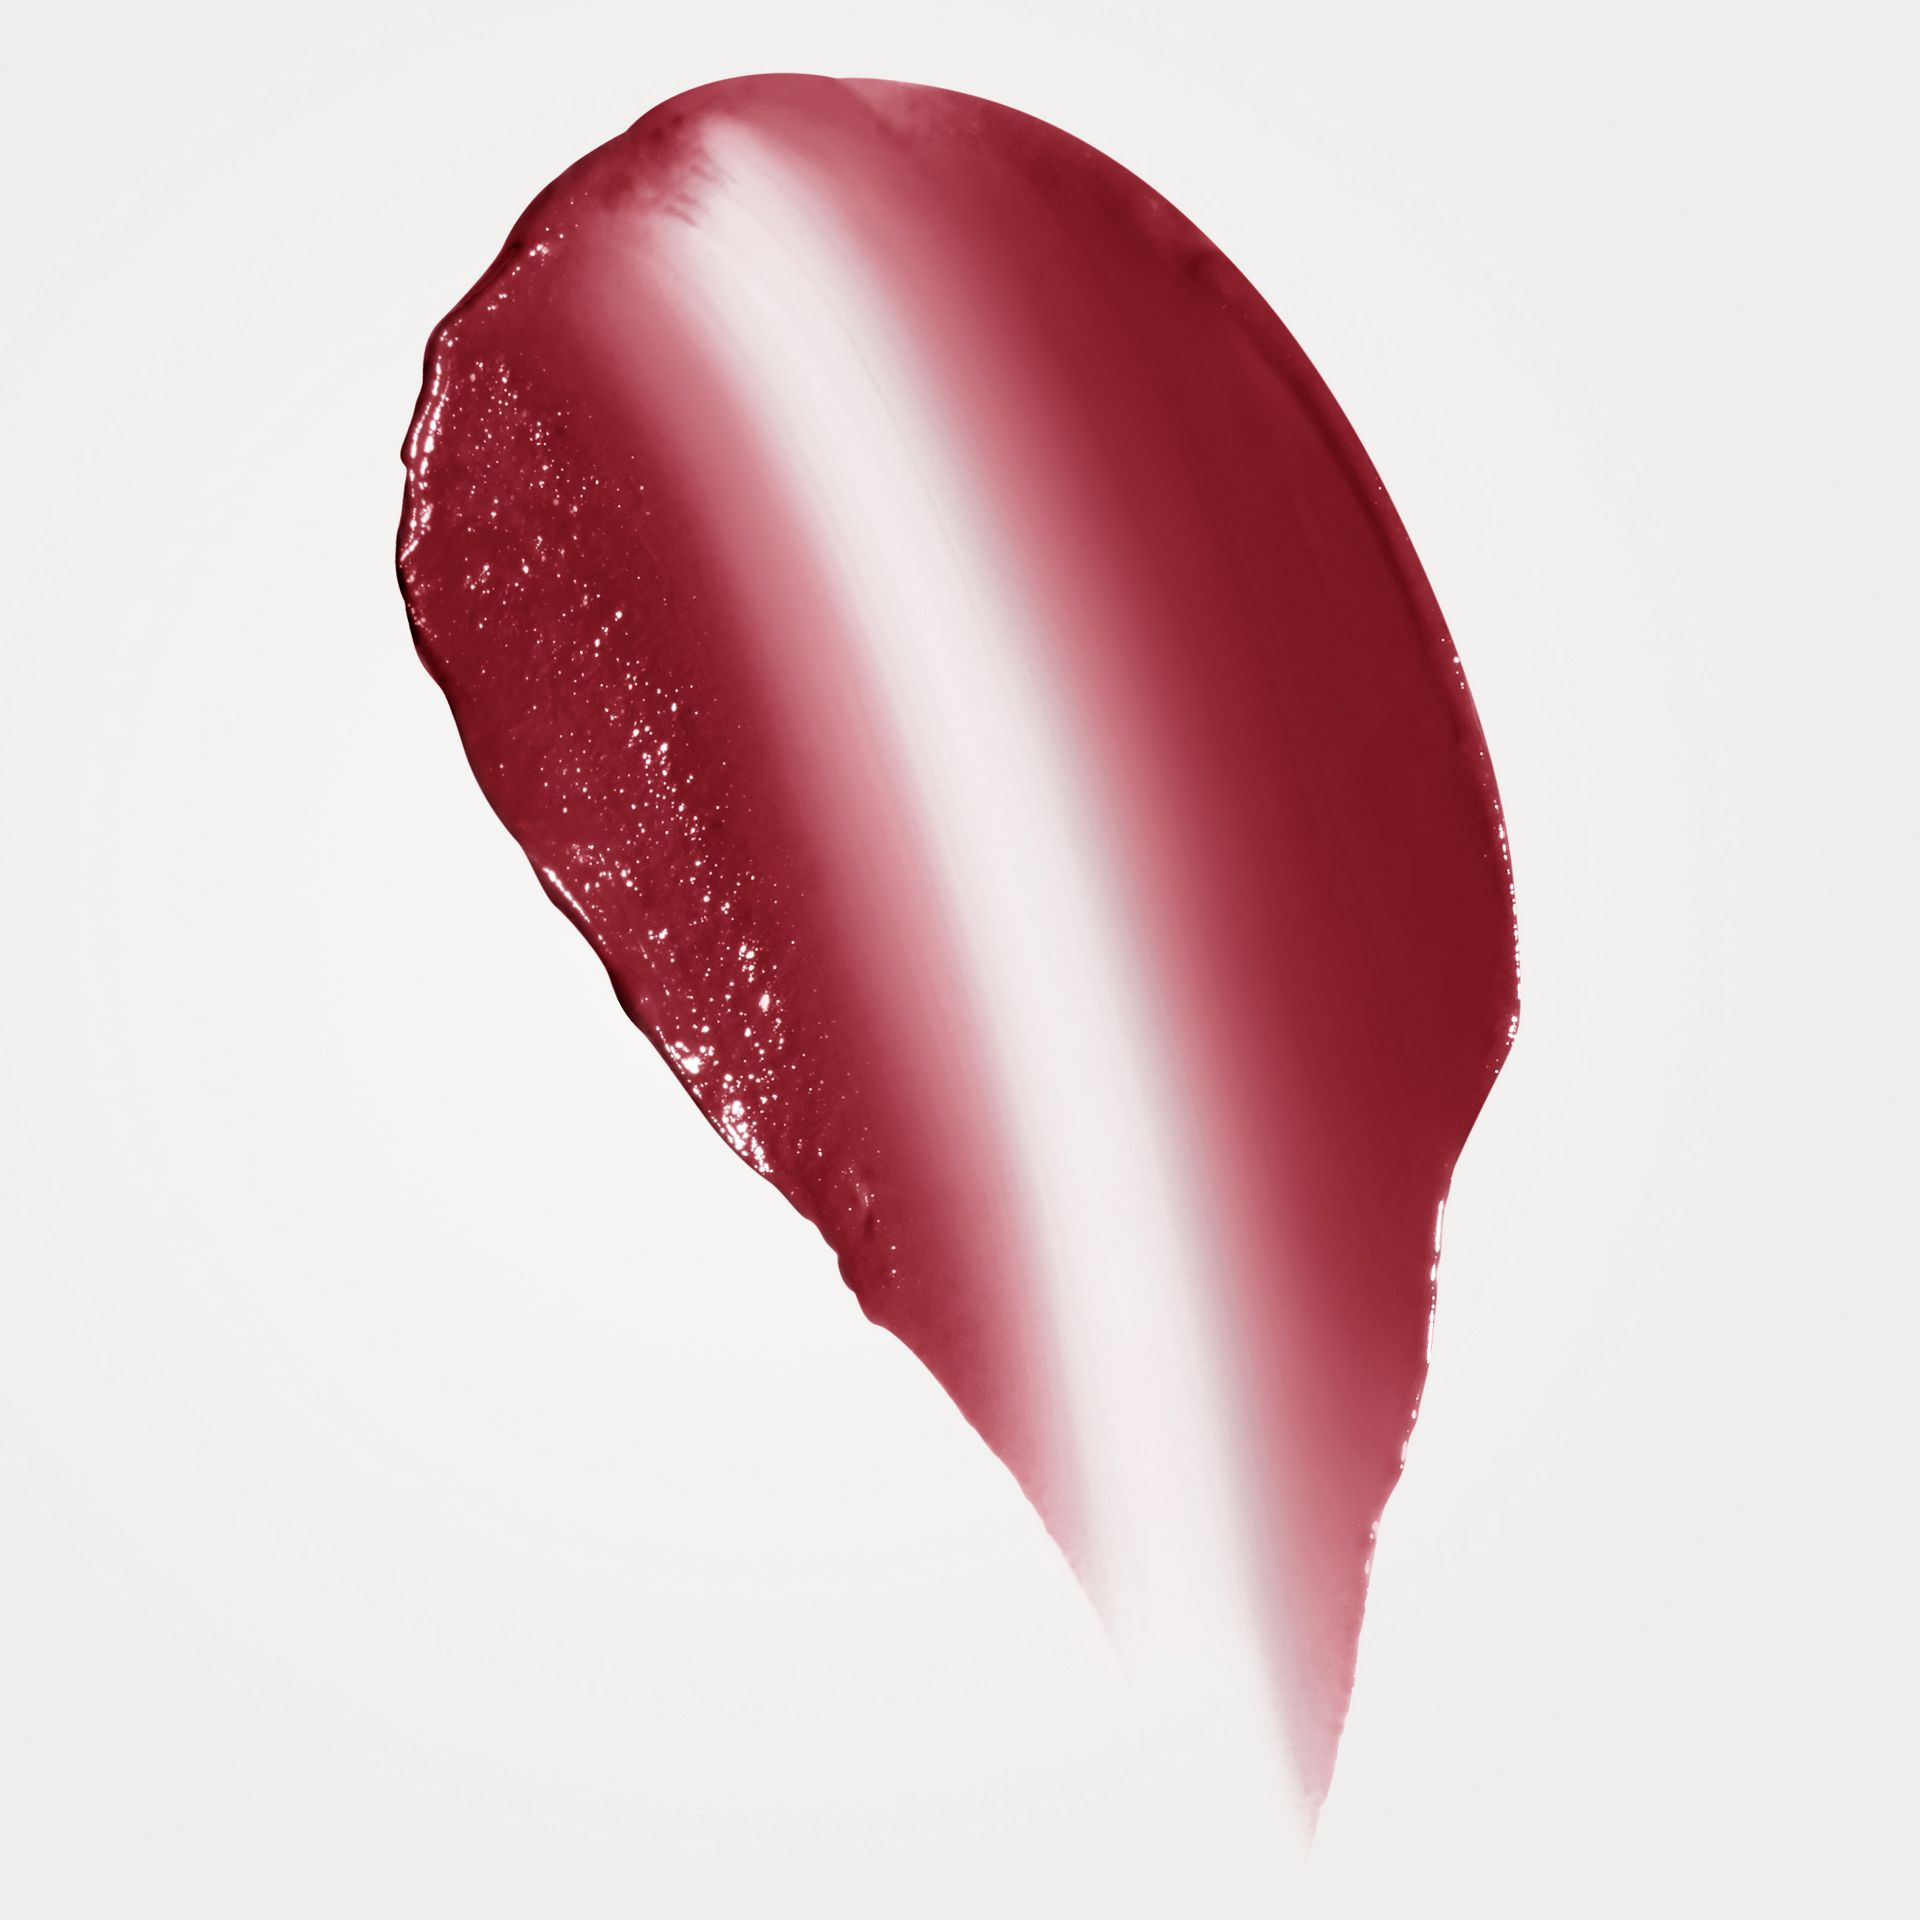 Burberry Kisses Sheer - Midnight Plum No.297 - Donna | Burberry - immagine della galleria 2